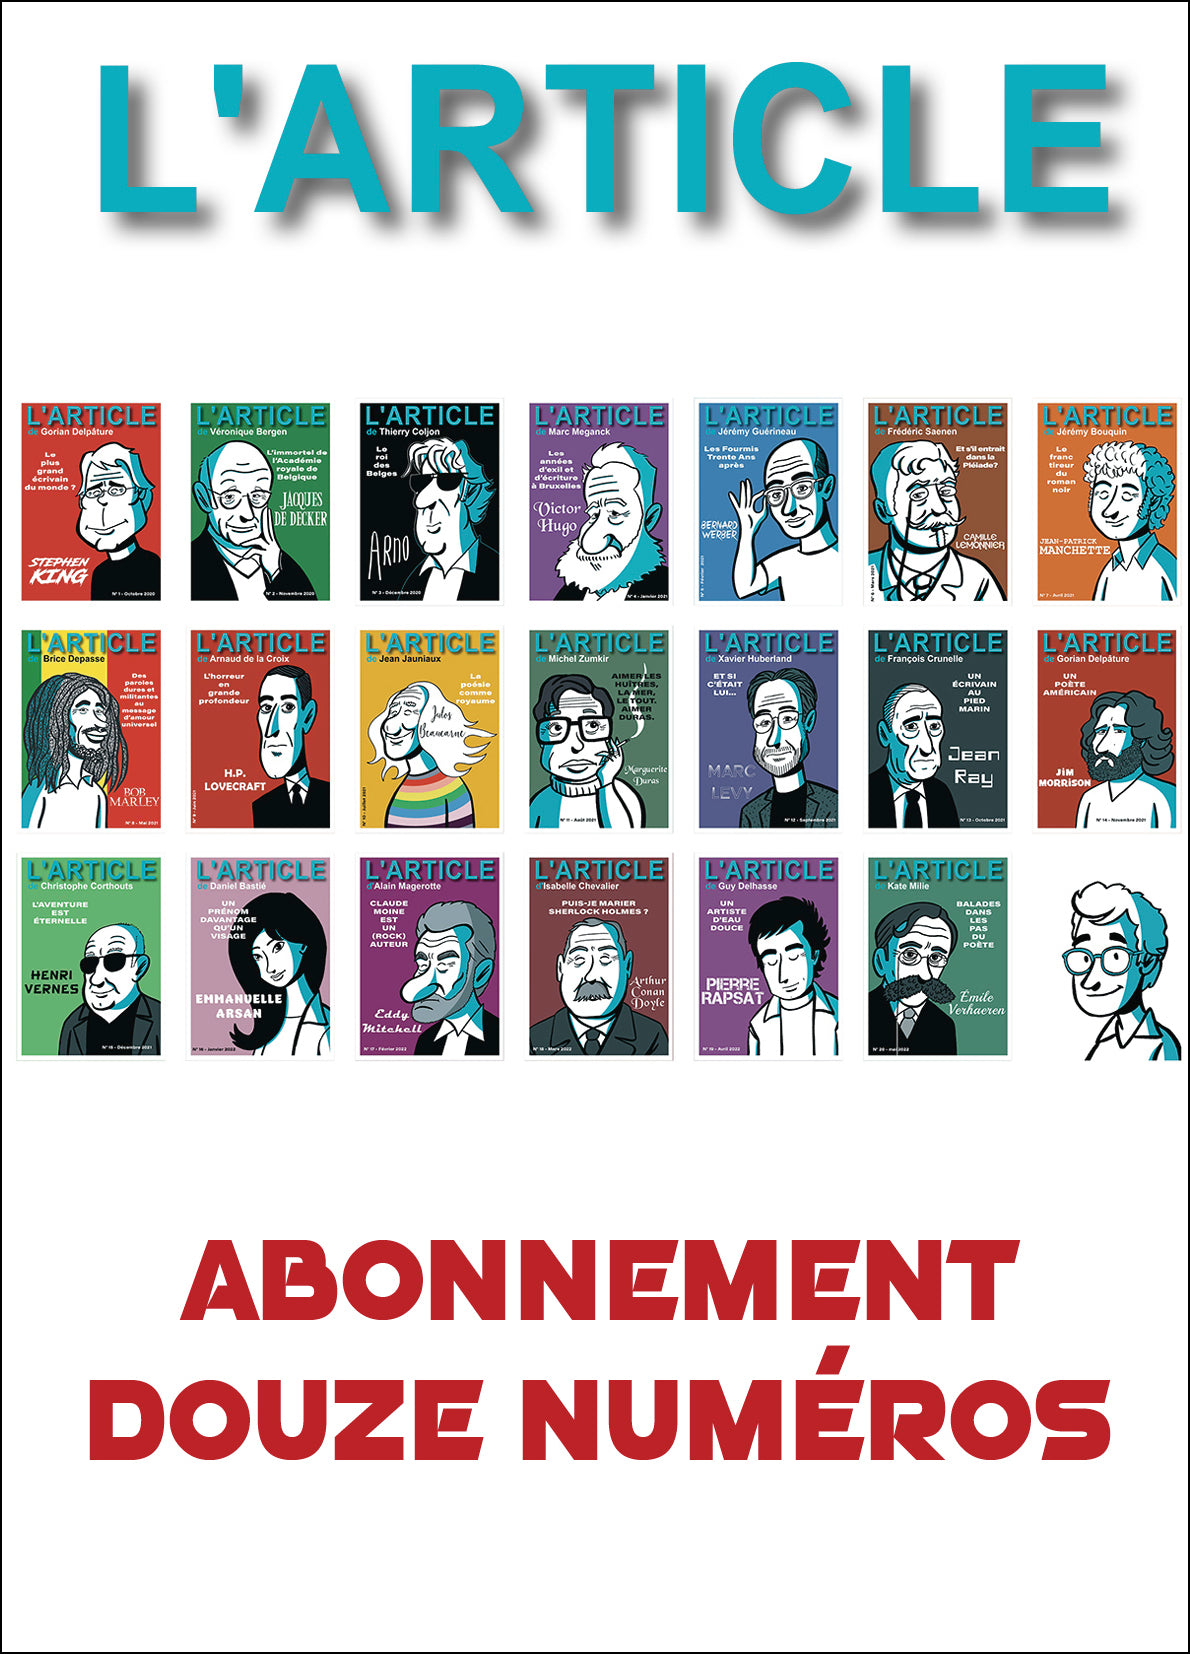 L'article : 1 an d'abonnement